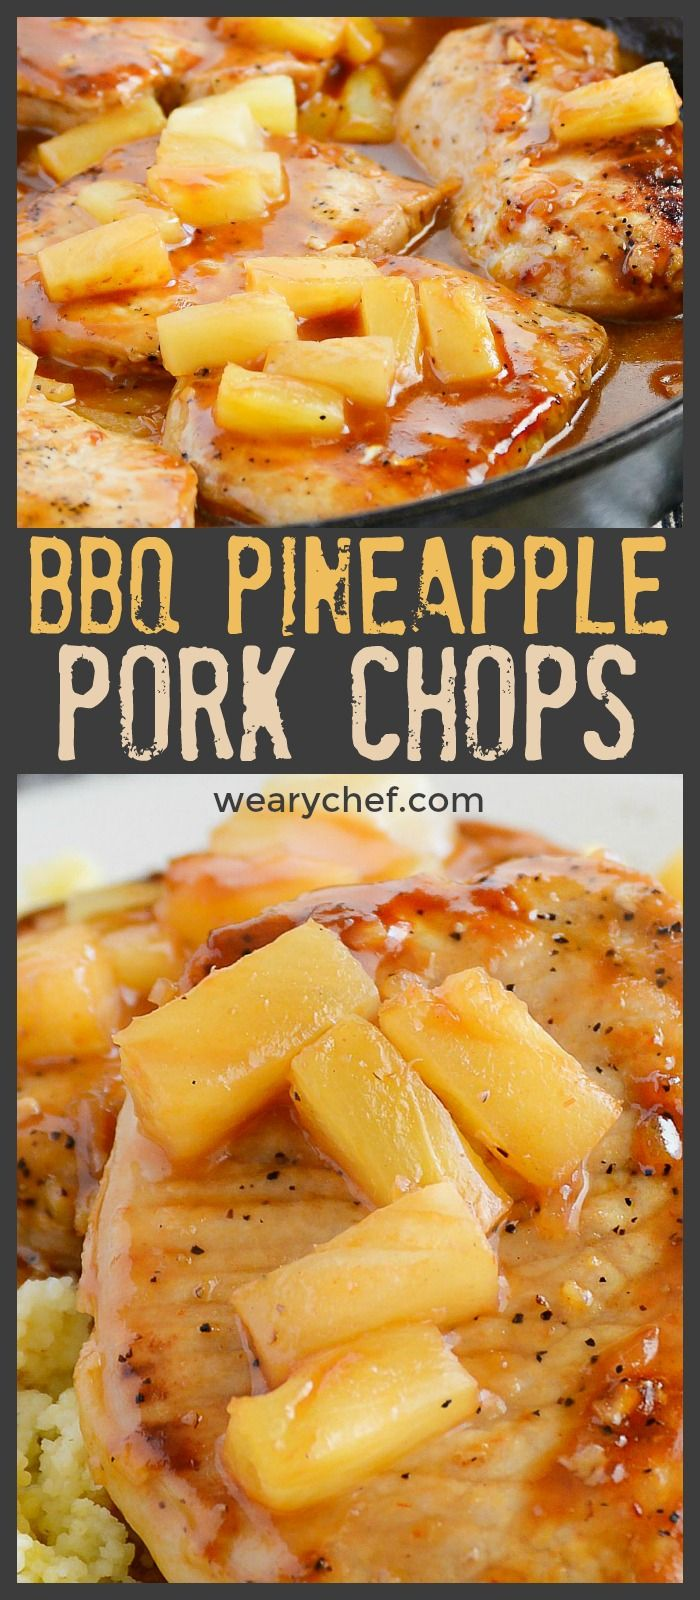 These skillet BBQ Pork Chops with Pineapple are a delicious dinner you'll want to remember for busy nights! #pineapple #porkchops #dinner #recipe #pork #bbq